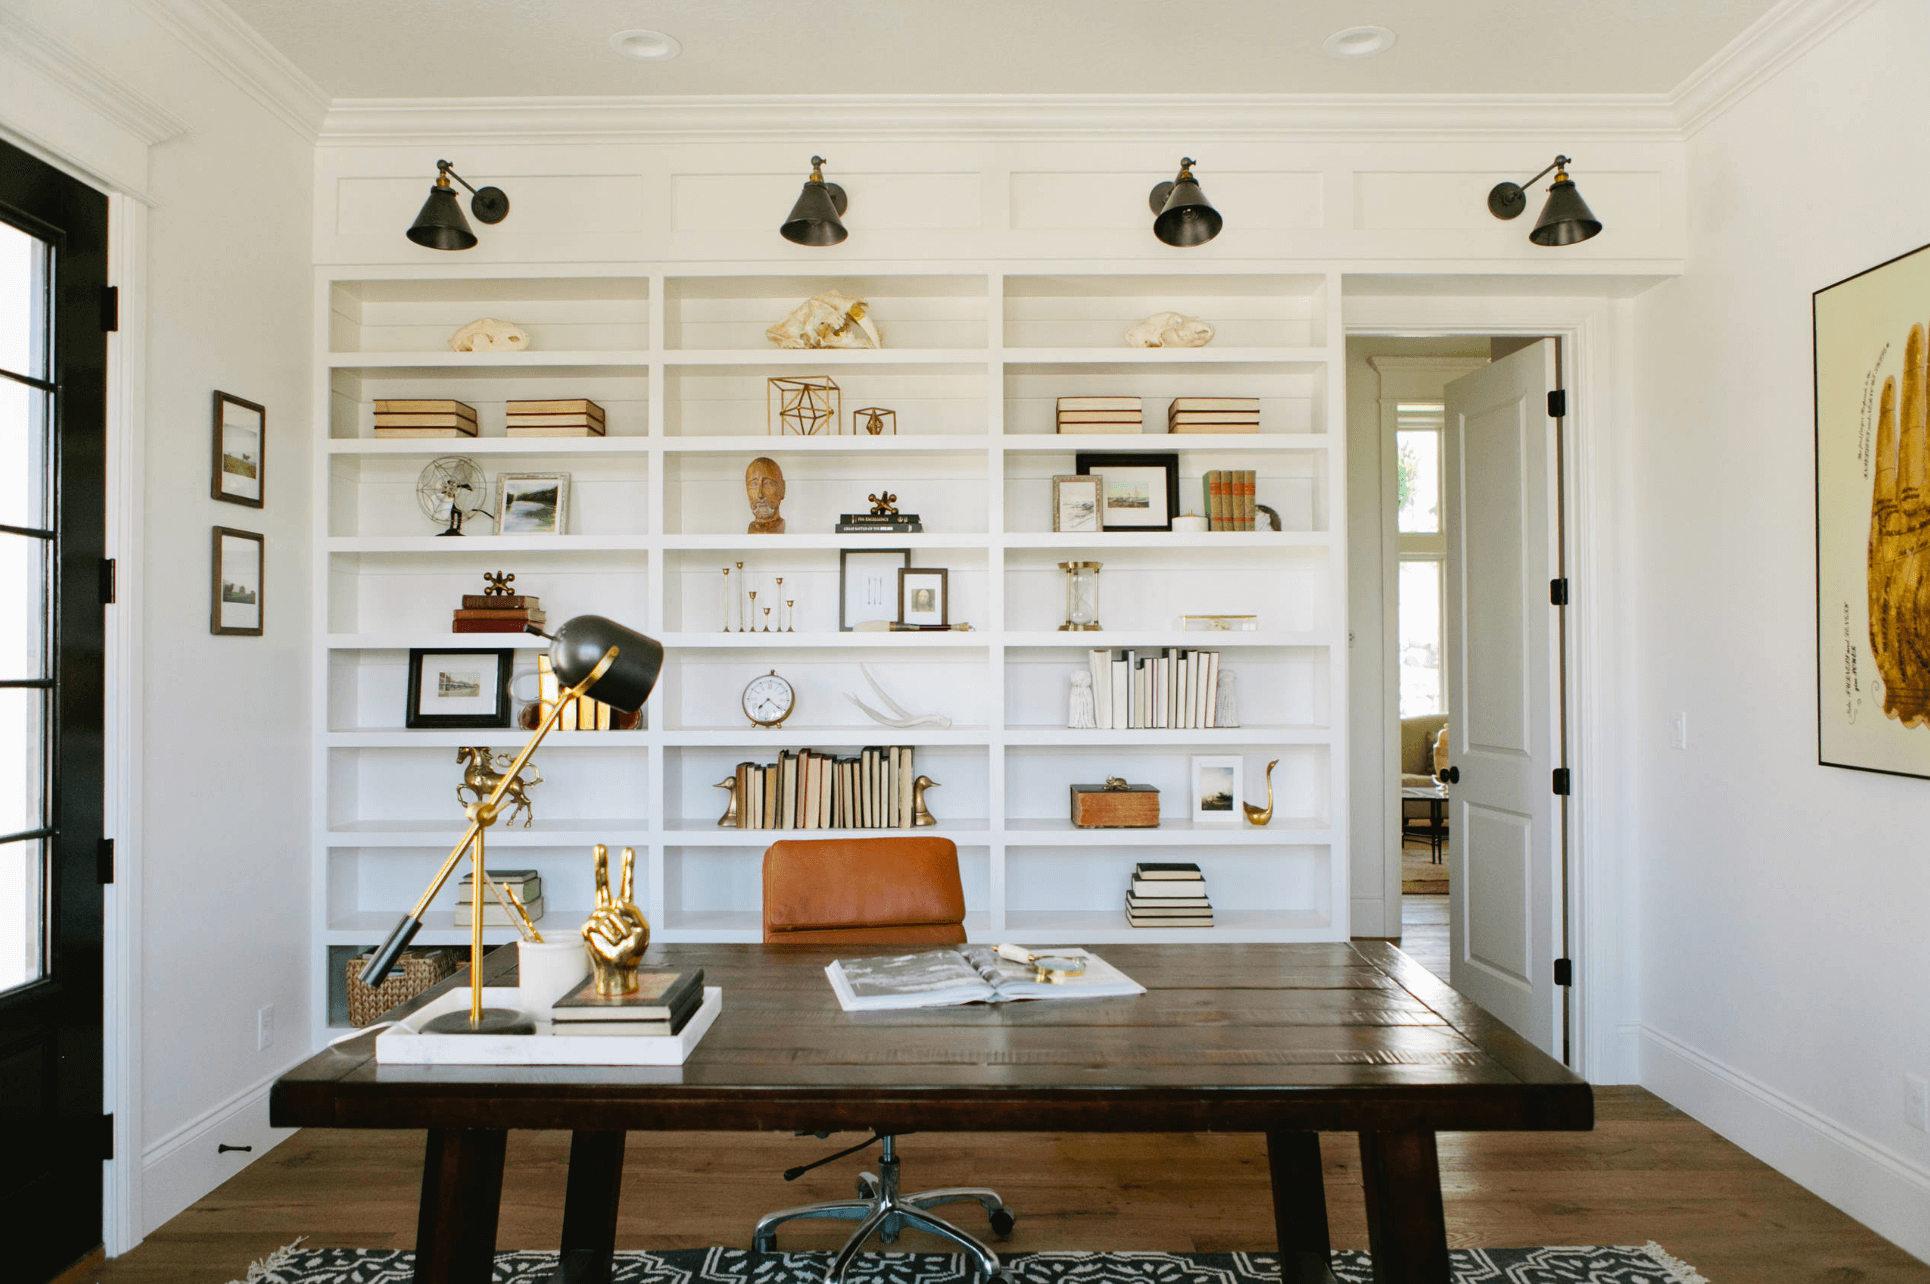 home office design 10 Home Office Design Ideas You Should Get Inspired By 10 Home Office Design Ideas You Should Get Inspired By